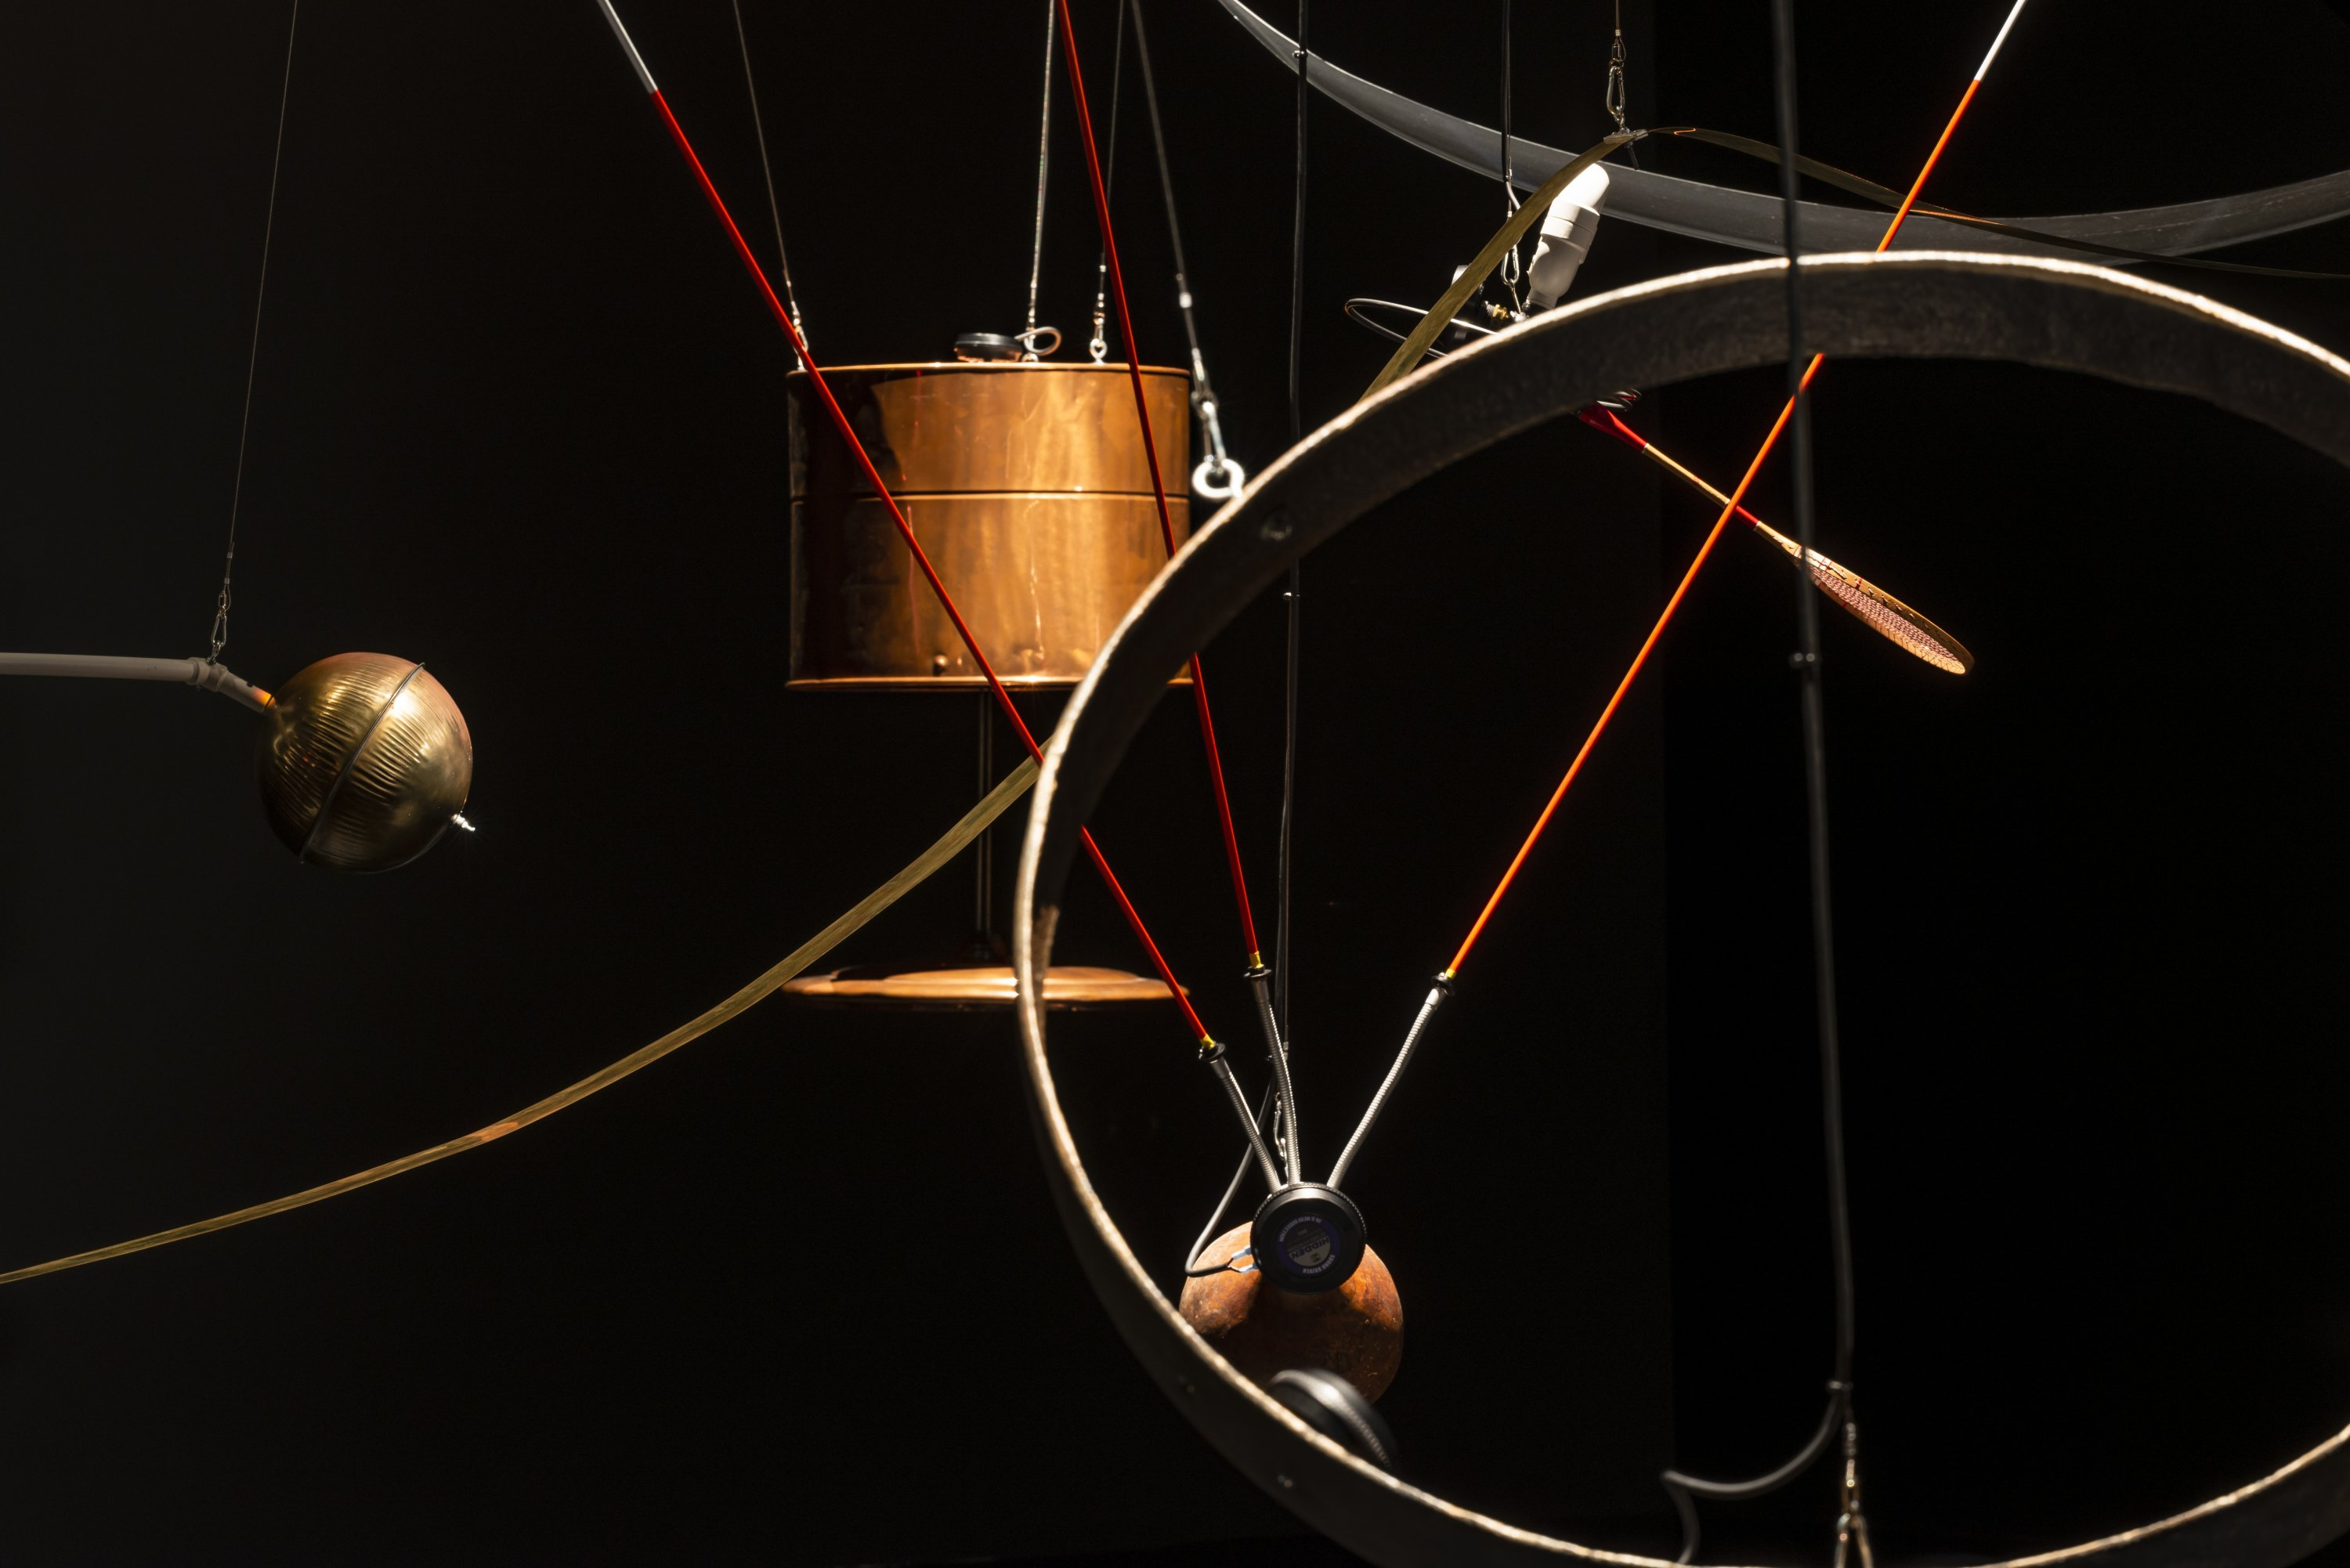 A close-up of copper objects from